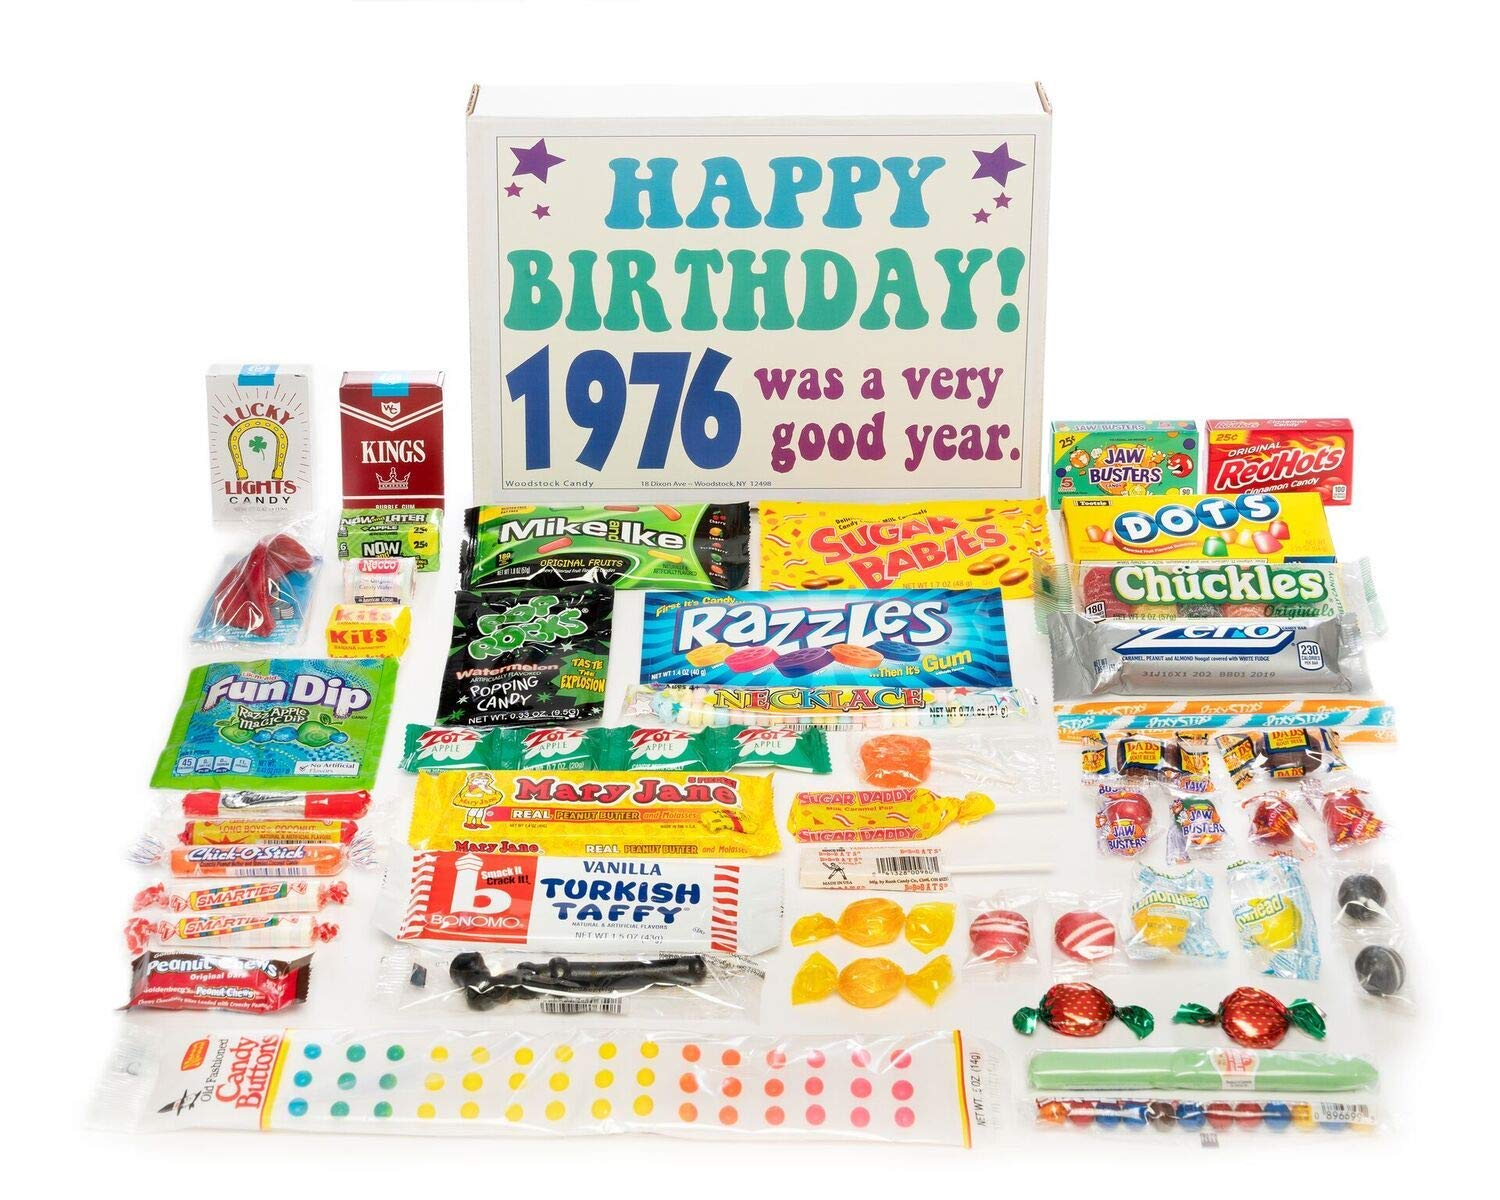 Woodstock Candy ~ 1976 43rd Birthday Gift Box of Nostalgic Retro Candy Assortment from Childhood for 43 Year Old Man or Woman Born 1976